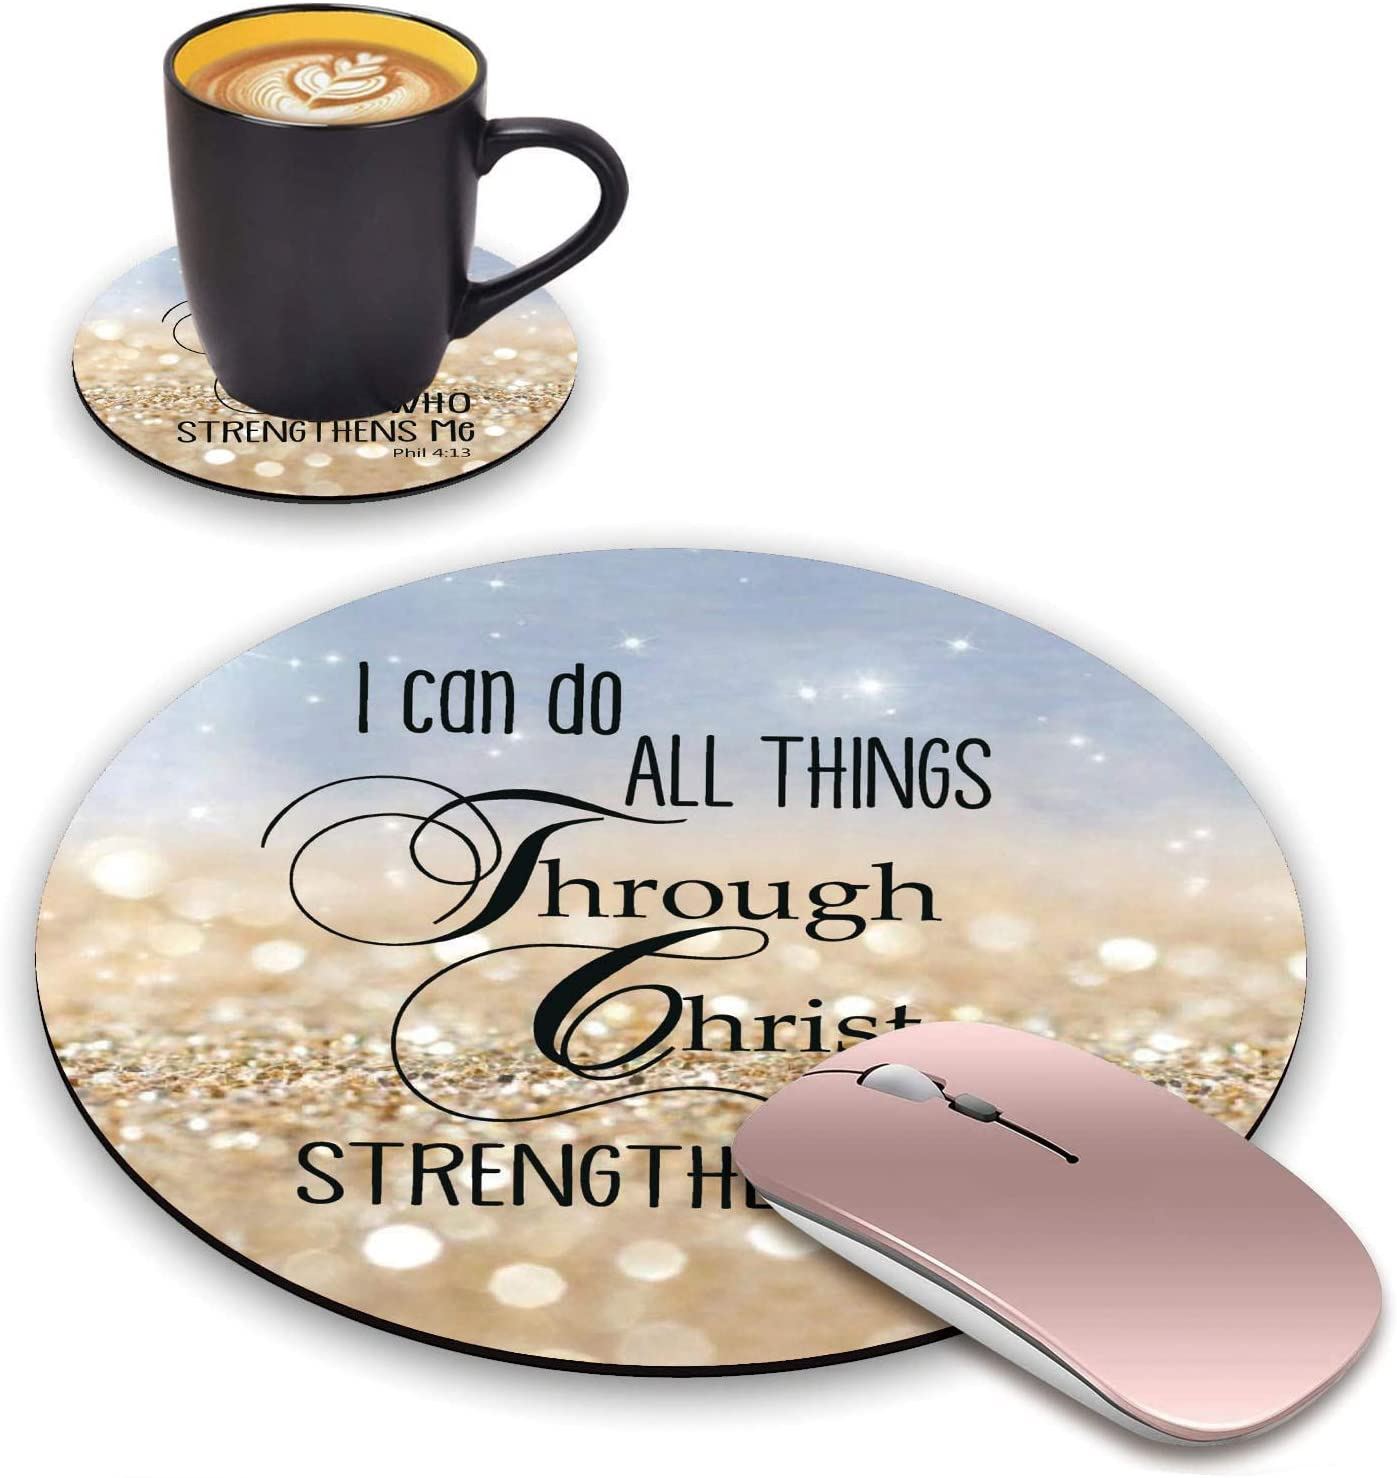 BWOOLL Round Mouse Pad and Coasters Set, Rainbow Glitter Mousepad, Inspirational Quotes Christian Bible Verse Phil 4-13 Mousepad, Non-Slip Rubber Base Mouse Pads for Laptop and Computer